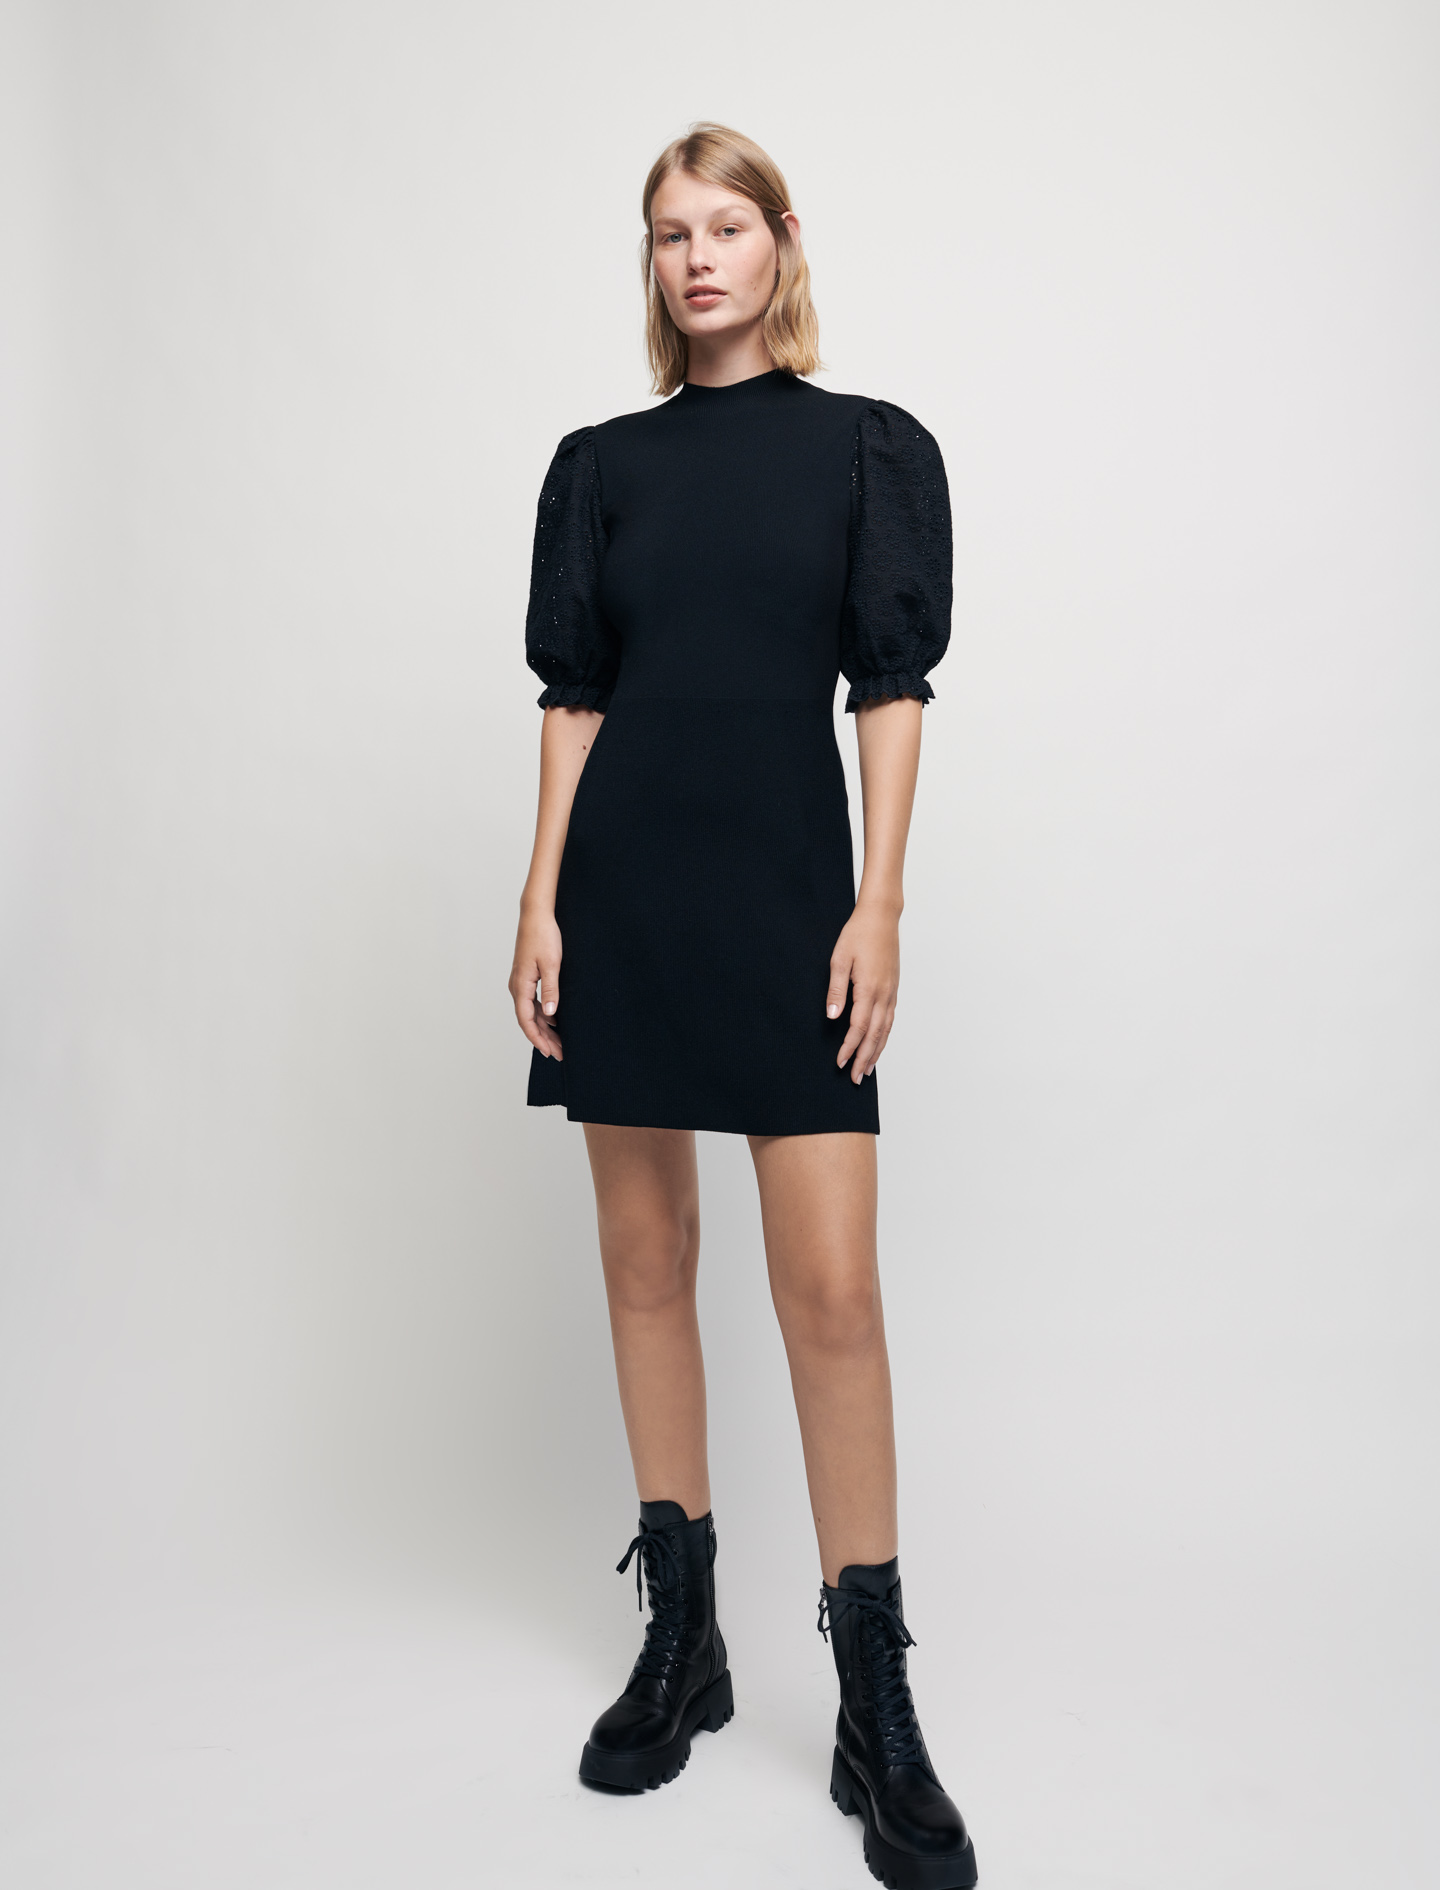 Knit dress with guipure sleeves - Black